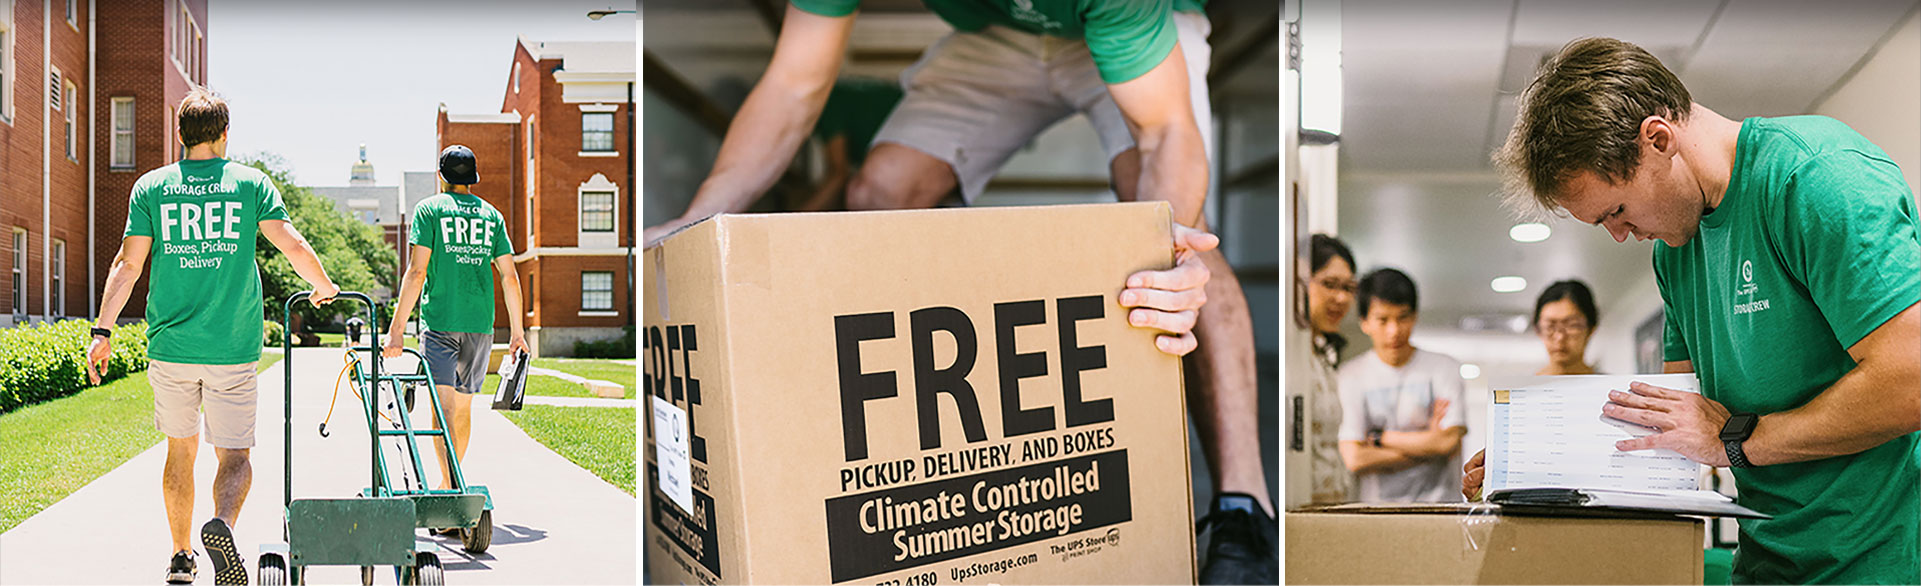 FREE BOXES. FREE PICKUP & DELIVERY. ALL INSURED